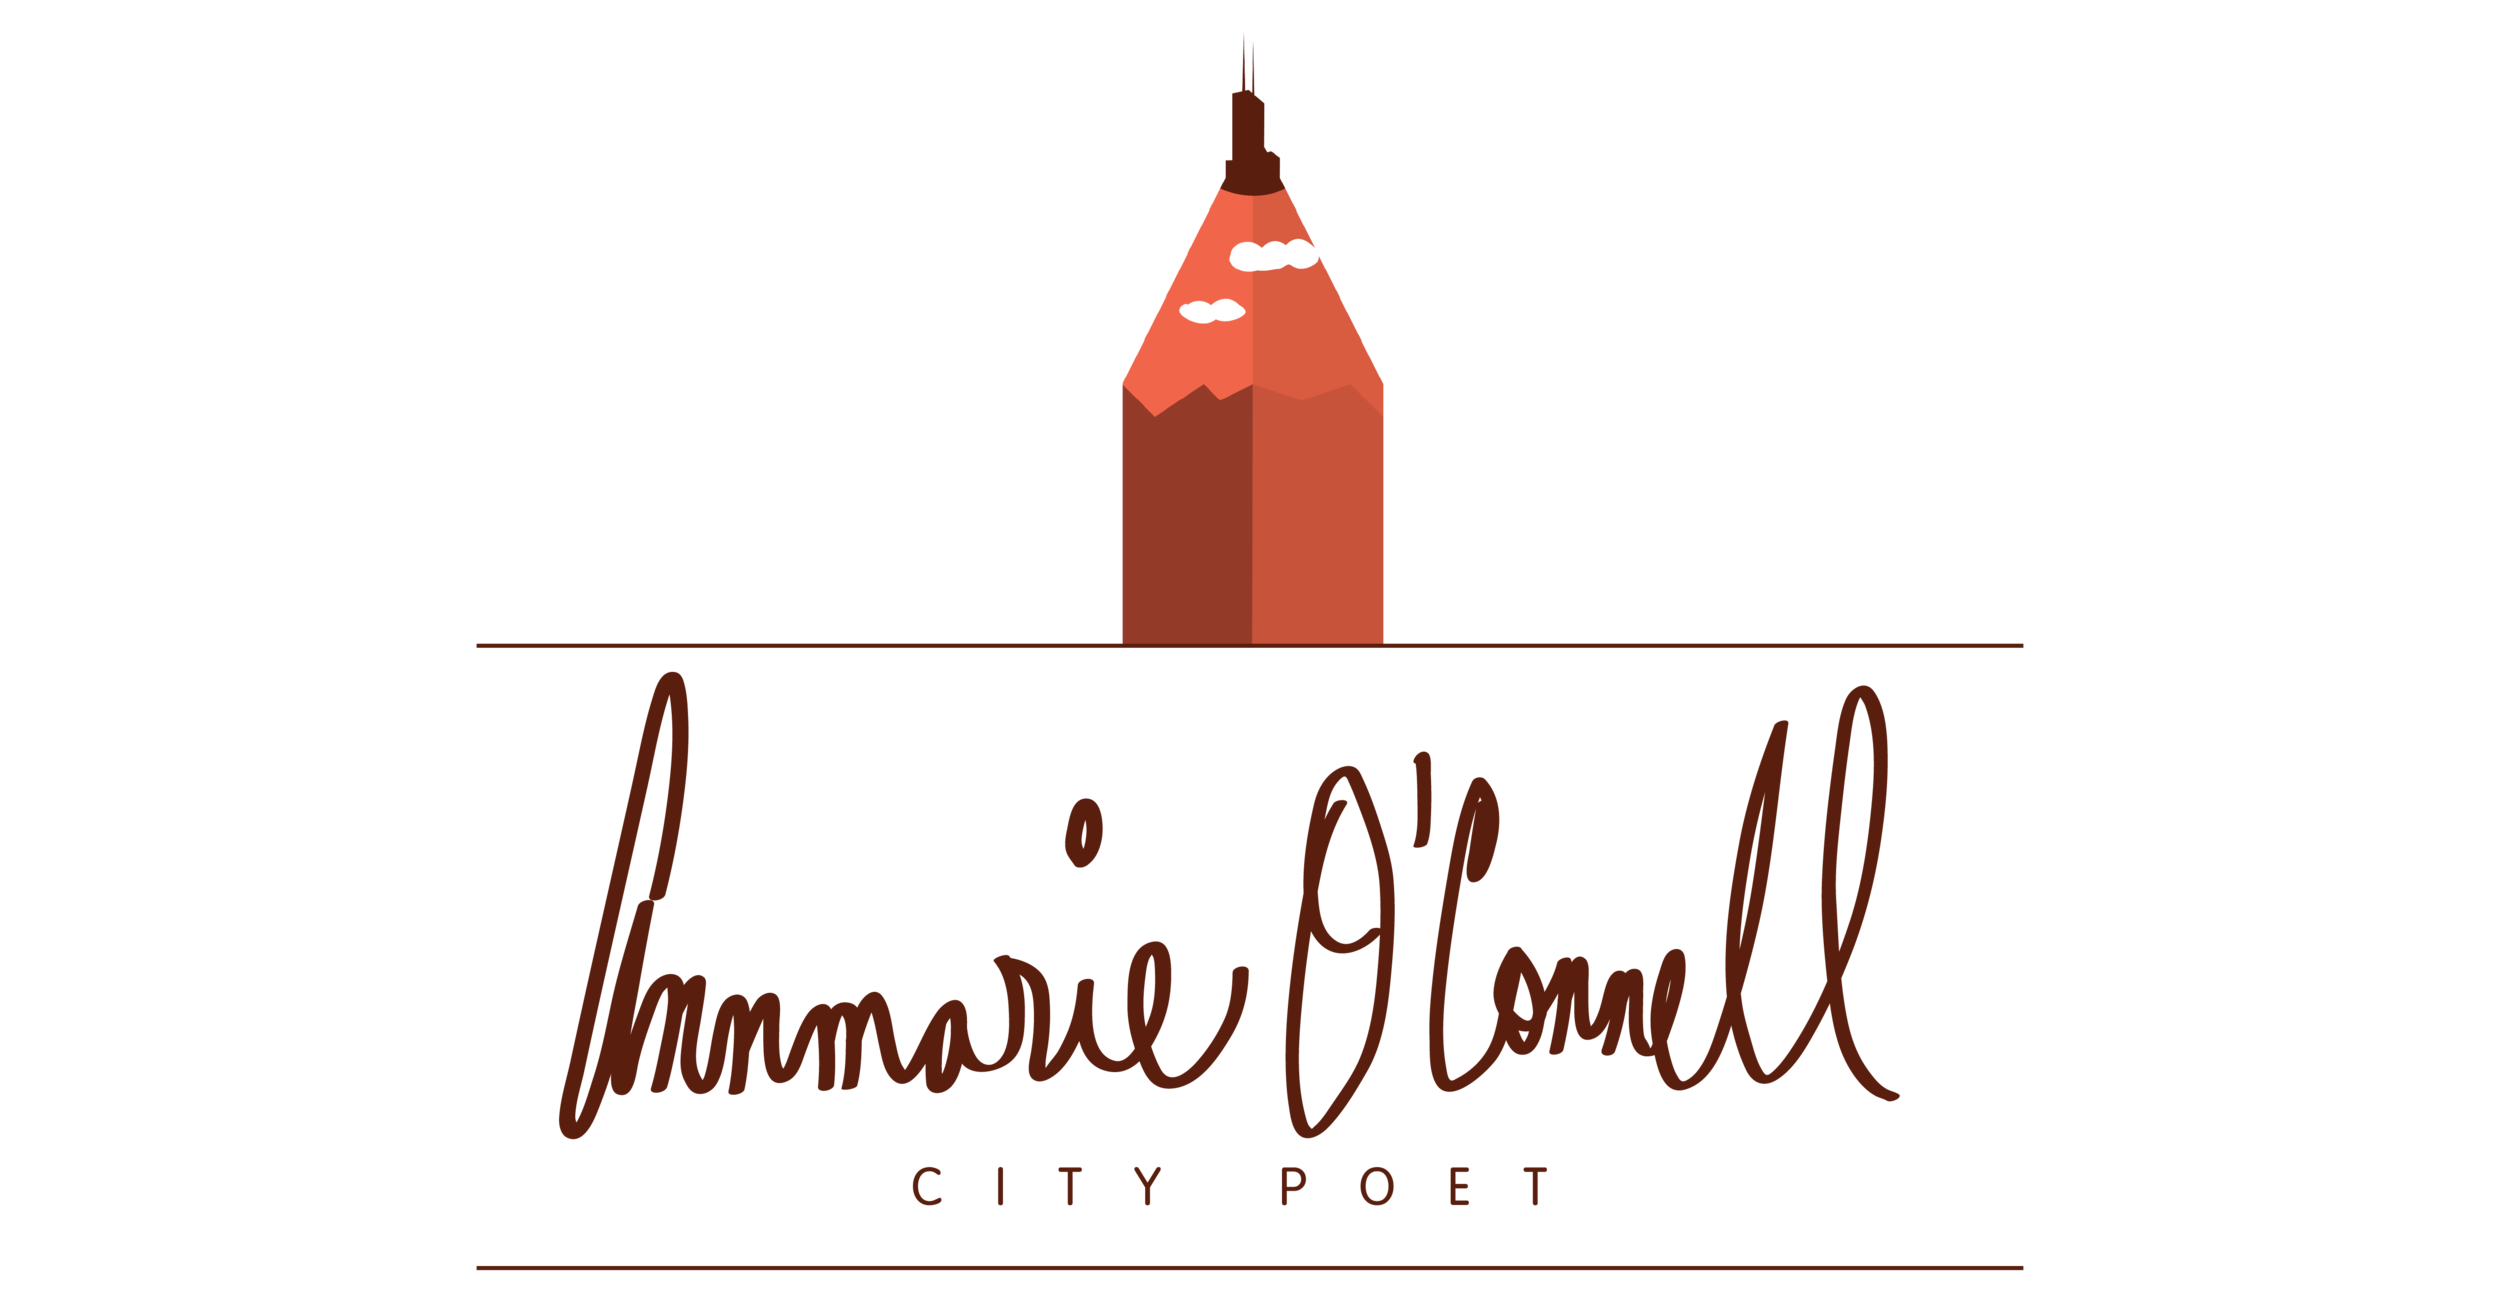 The City Poet